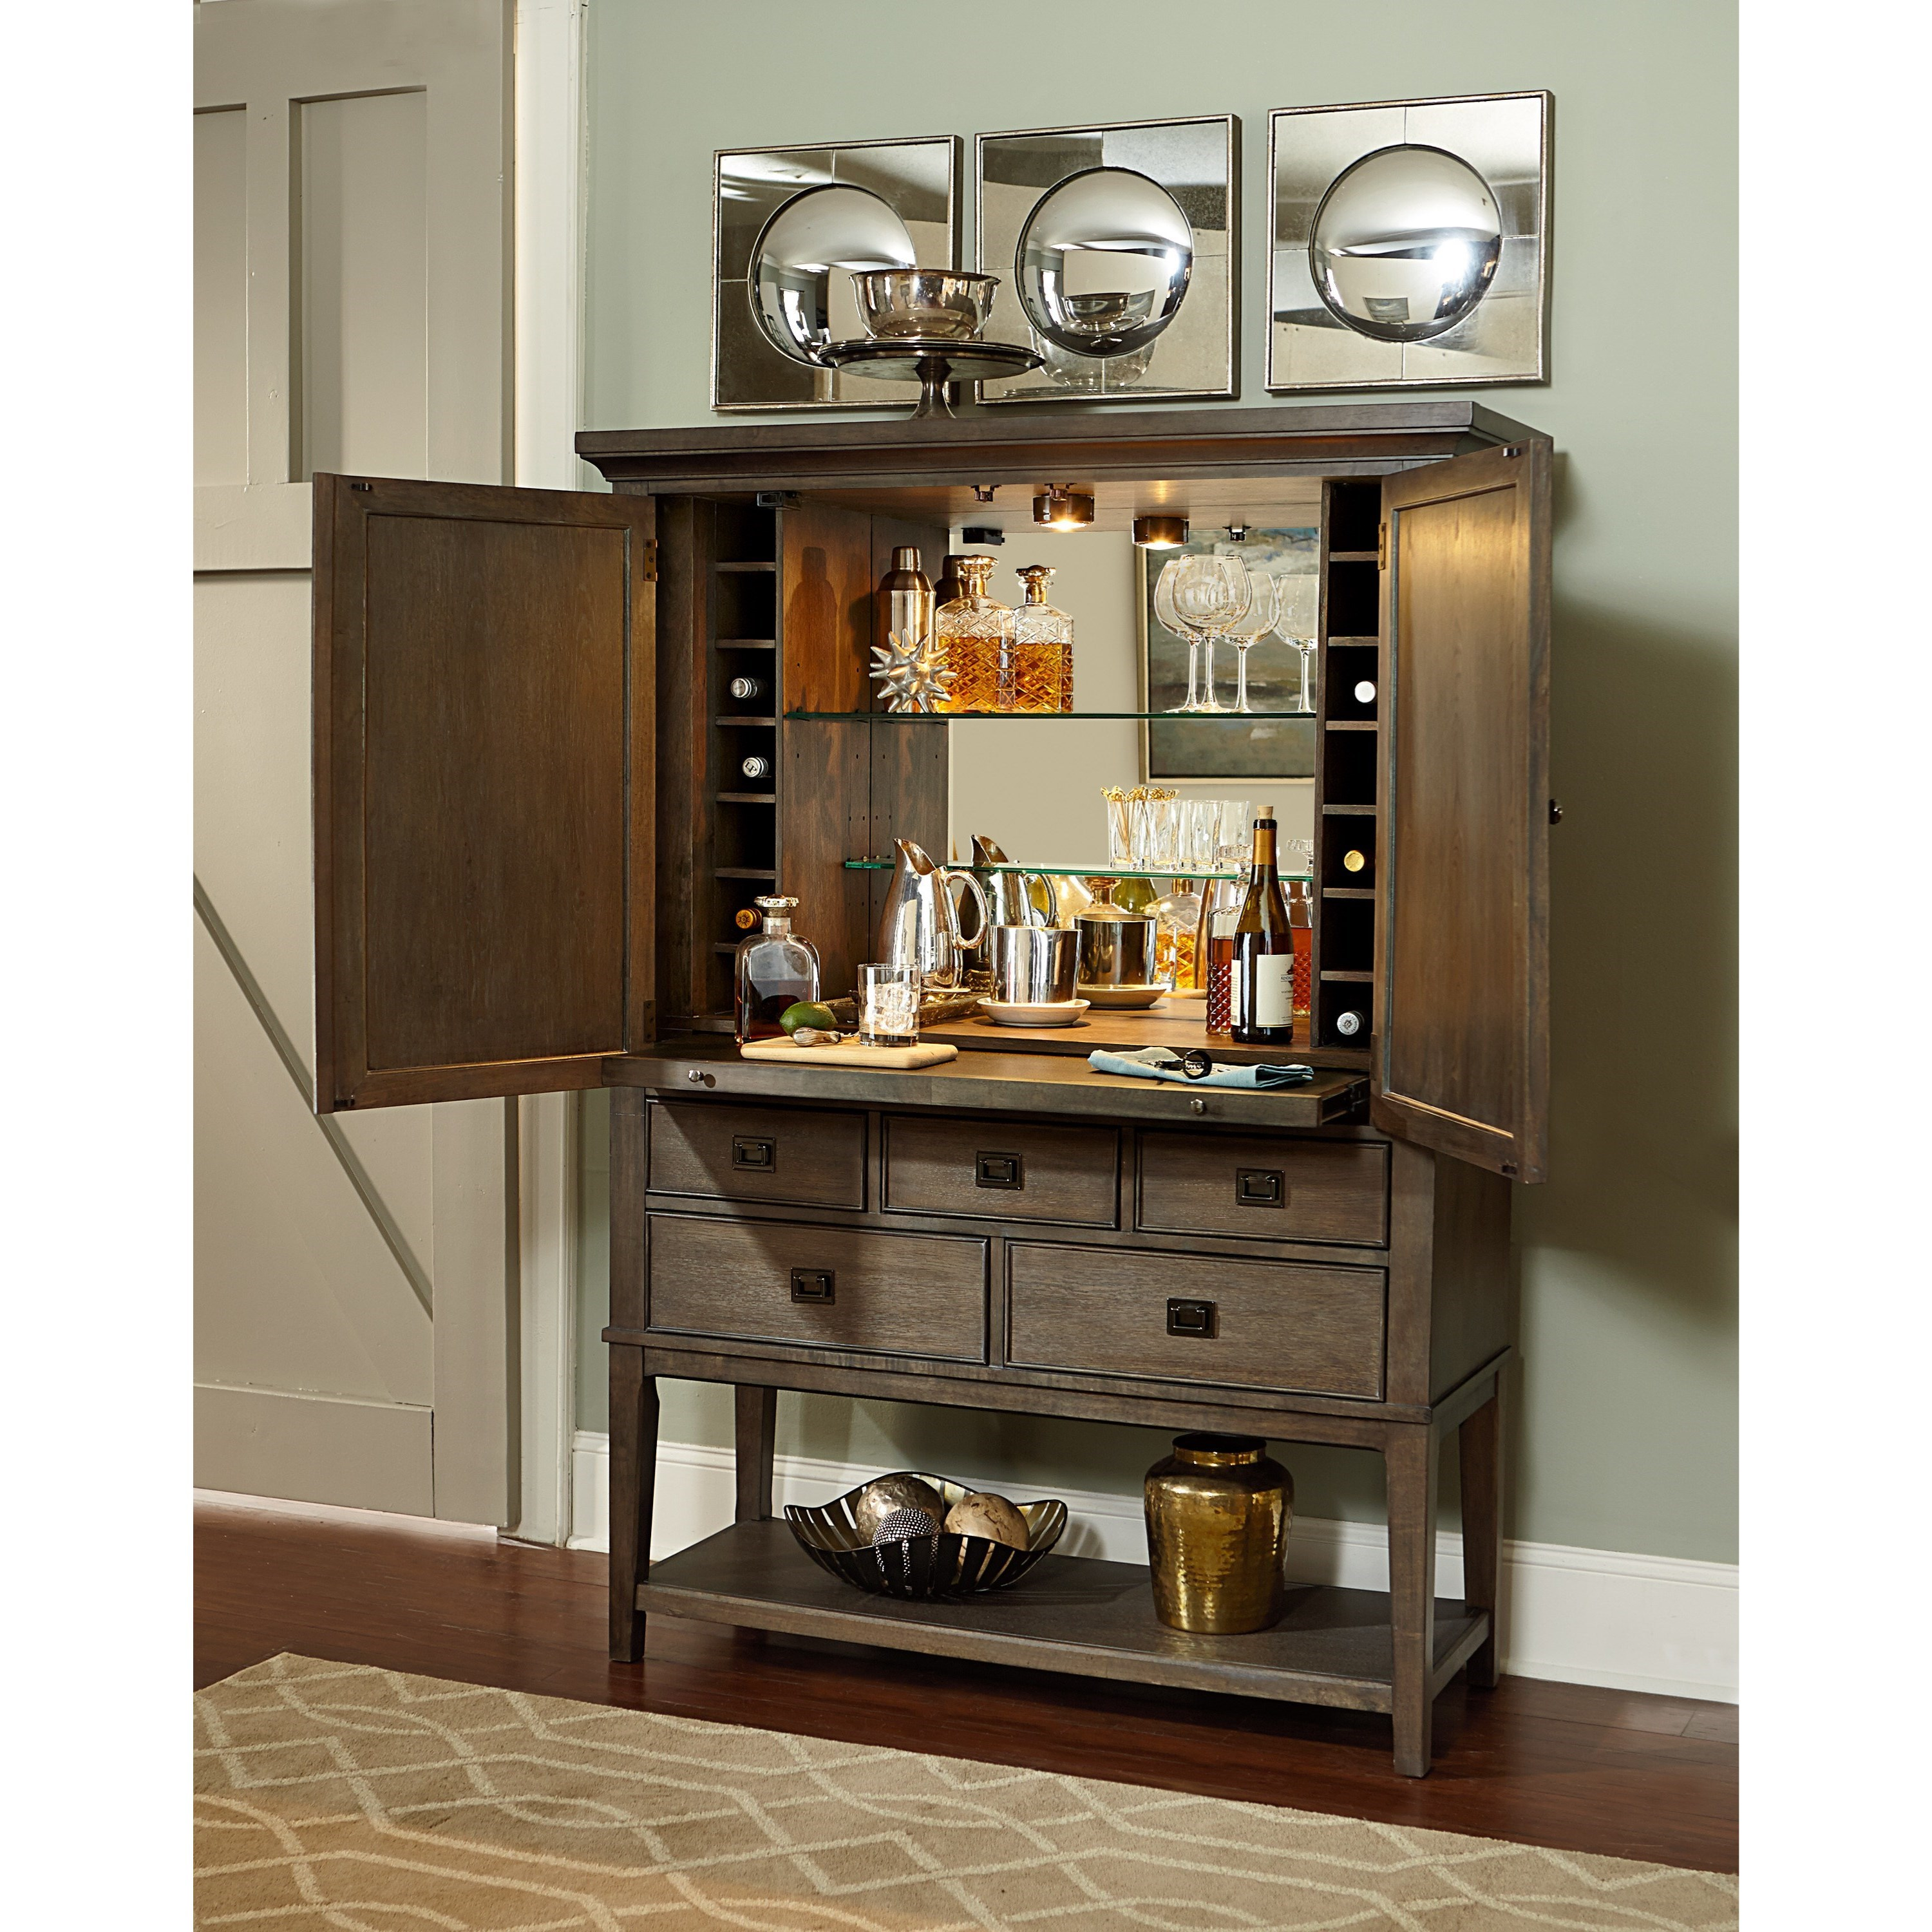 contemporary bar cabinet with bottle storage and pullout shelf. contemporary bar cabinet with bottle storage and pullout shelf by